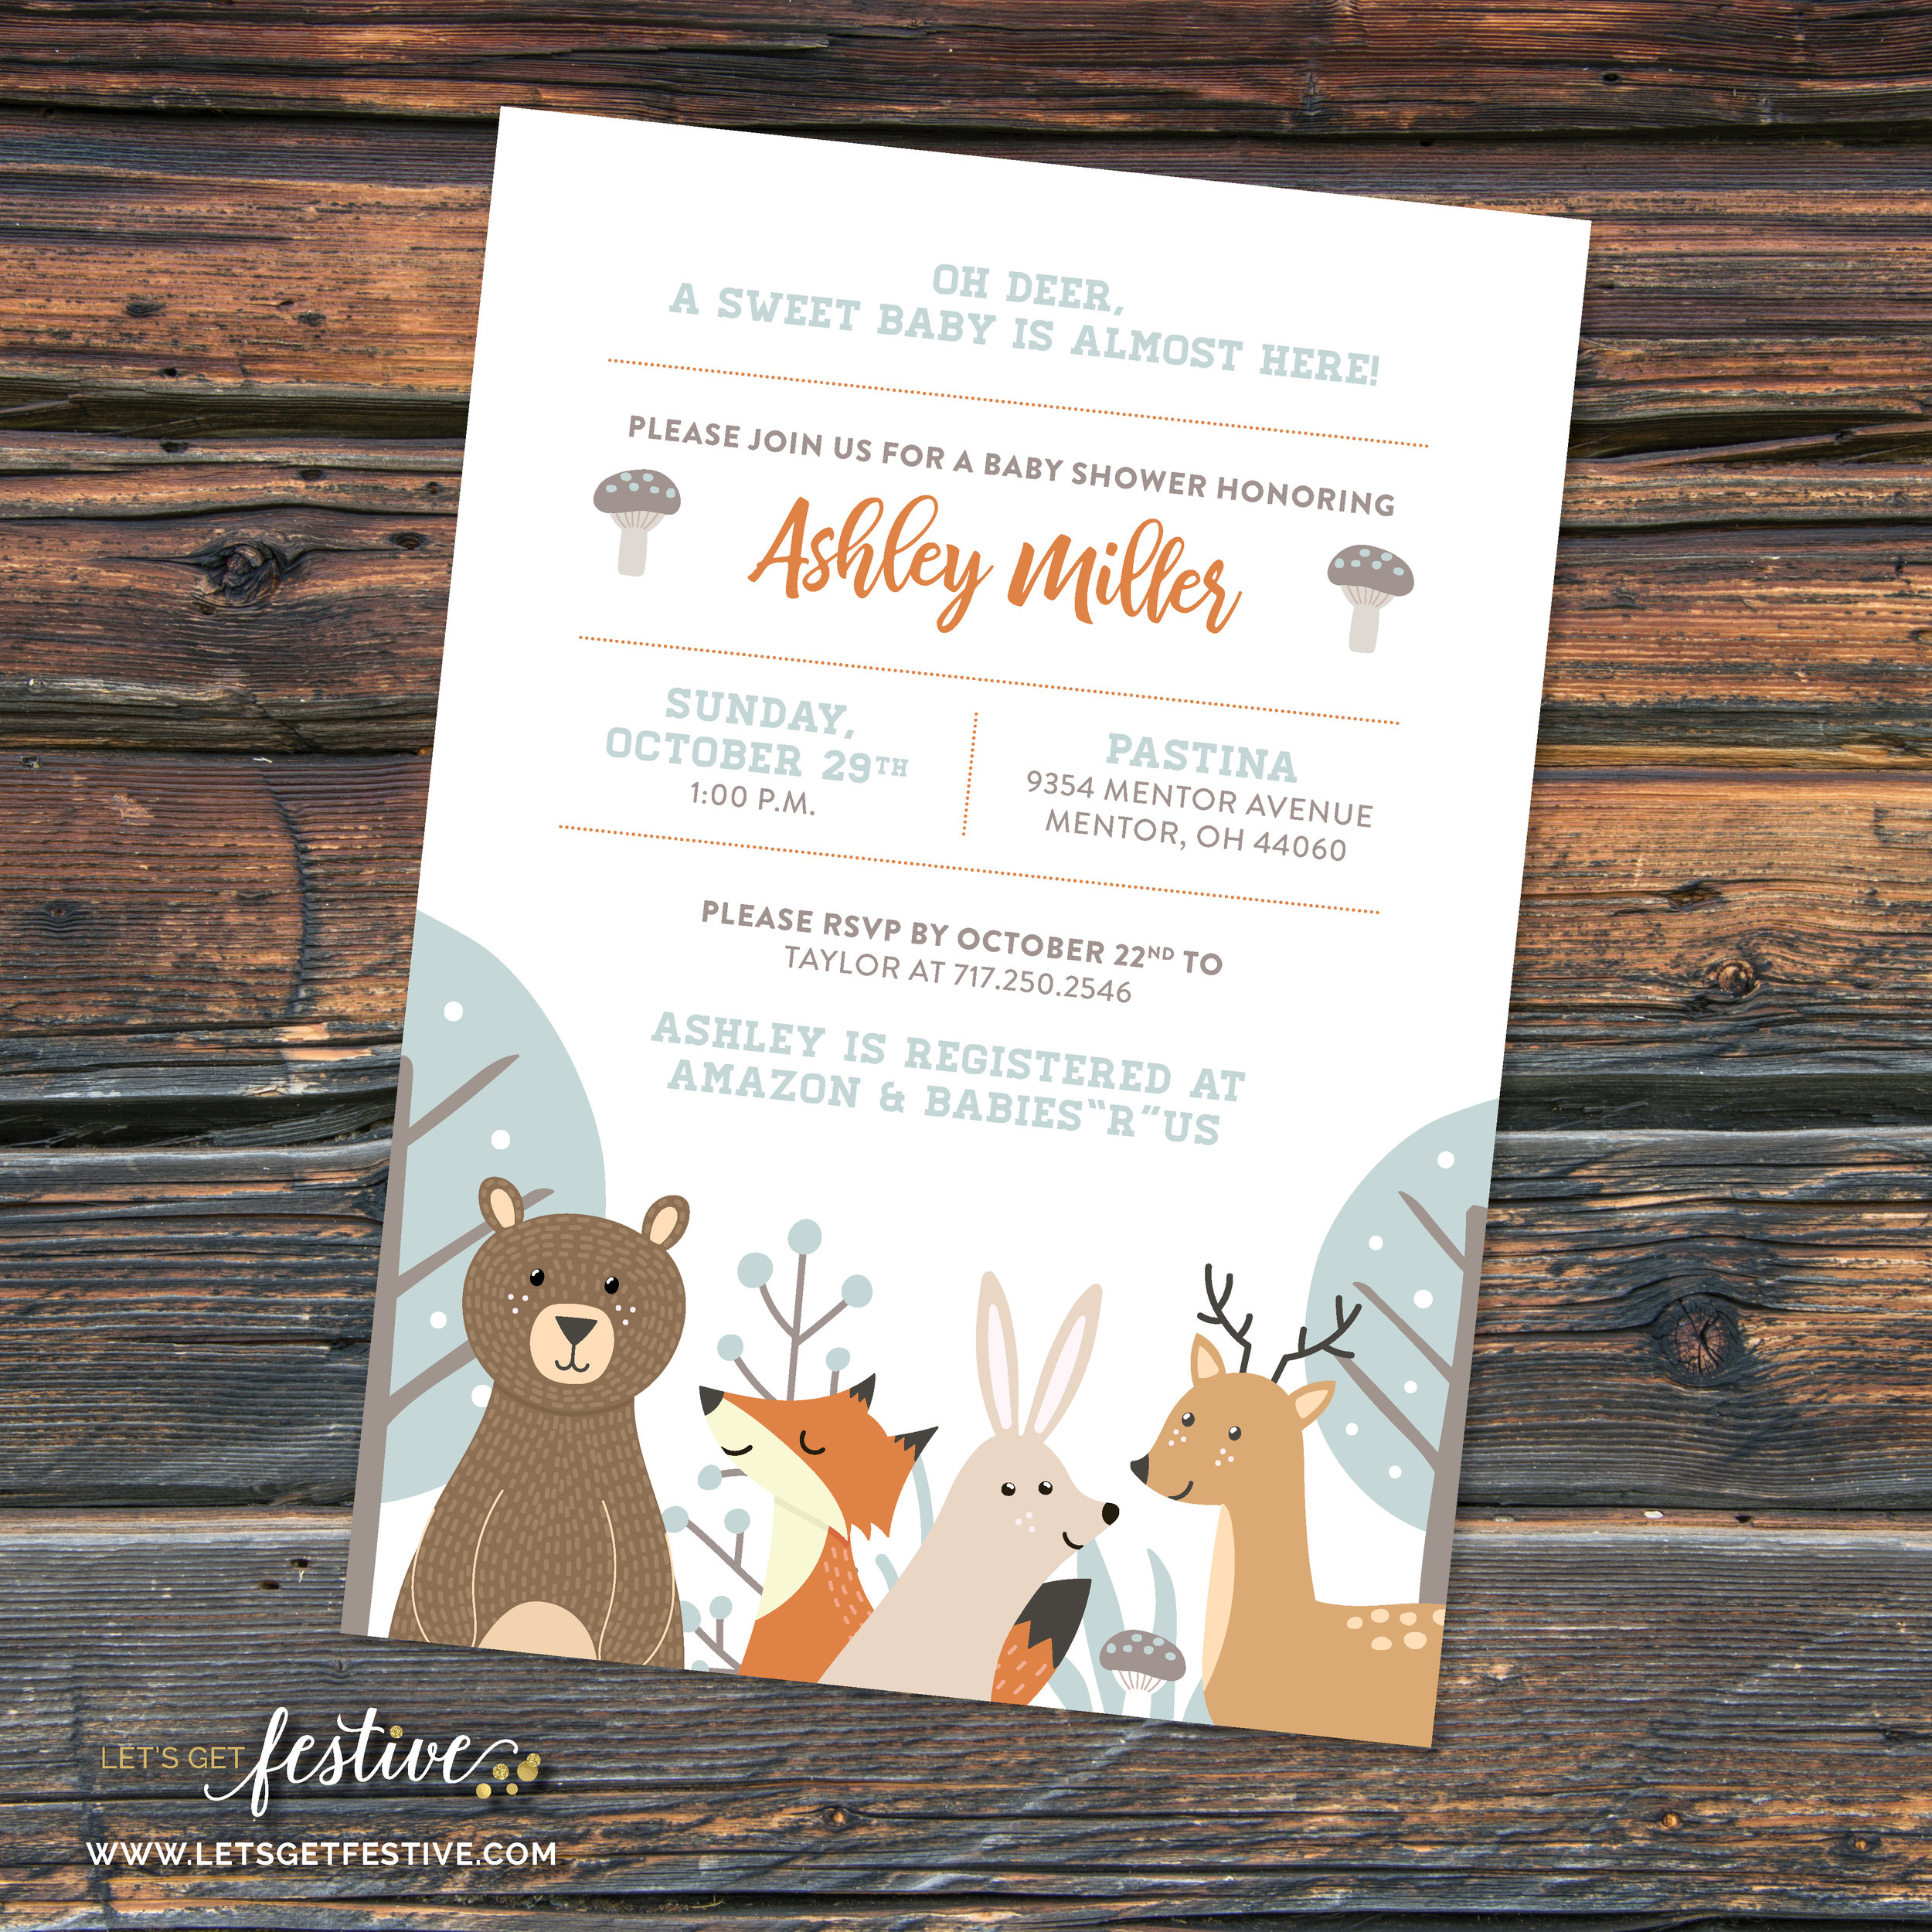 Lets Get Festive_Woodland Baby Shower Invite.jpg